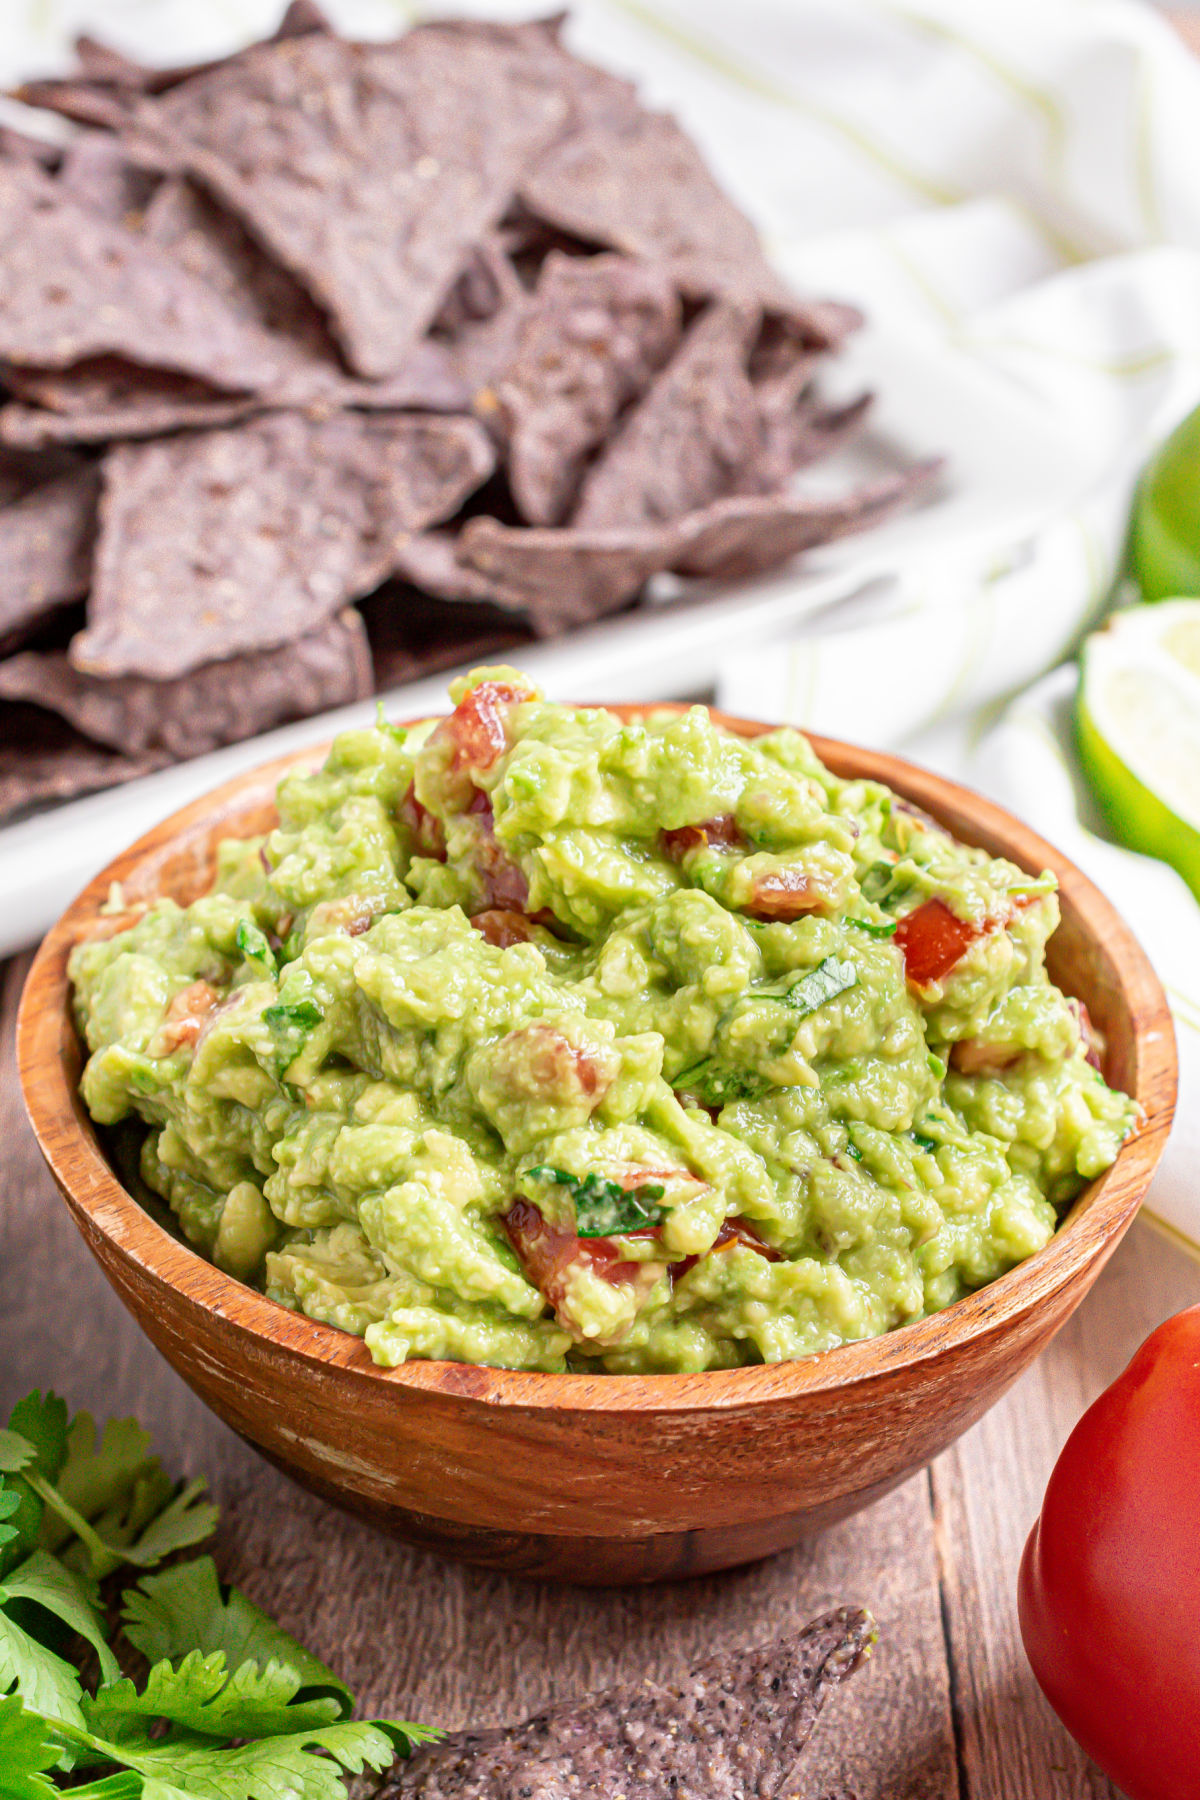 Chunky guacamole in a wooden bowl.